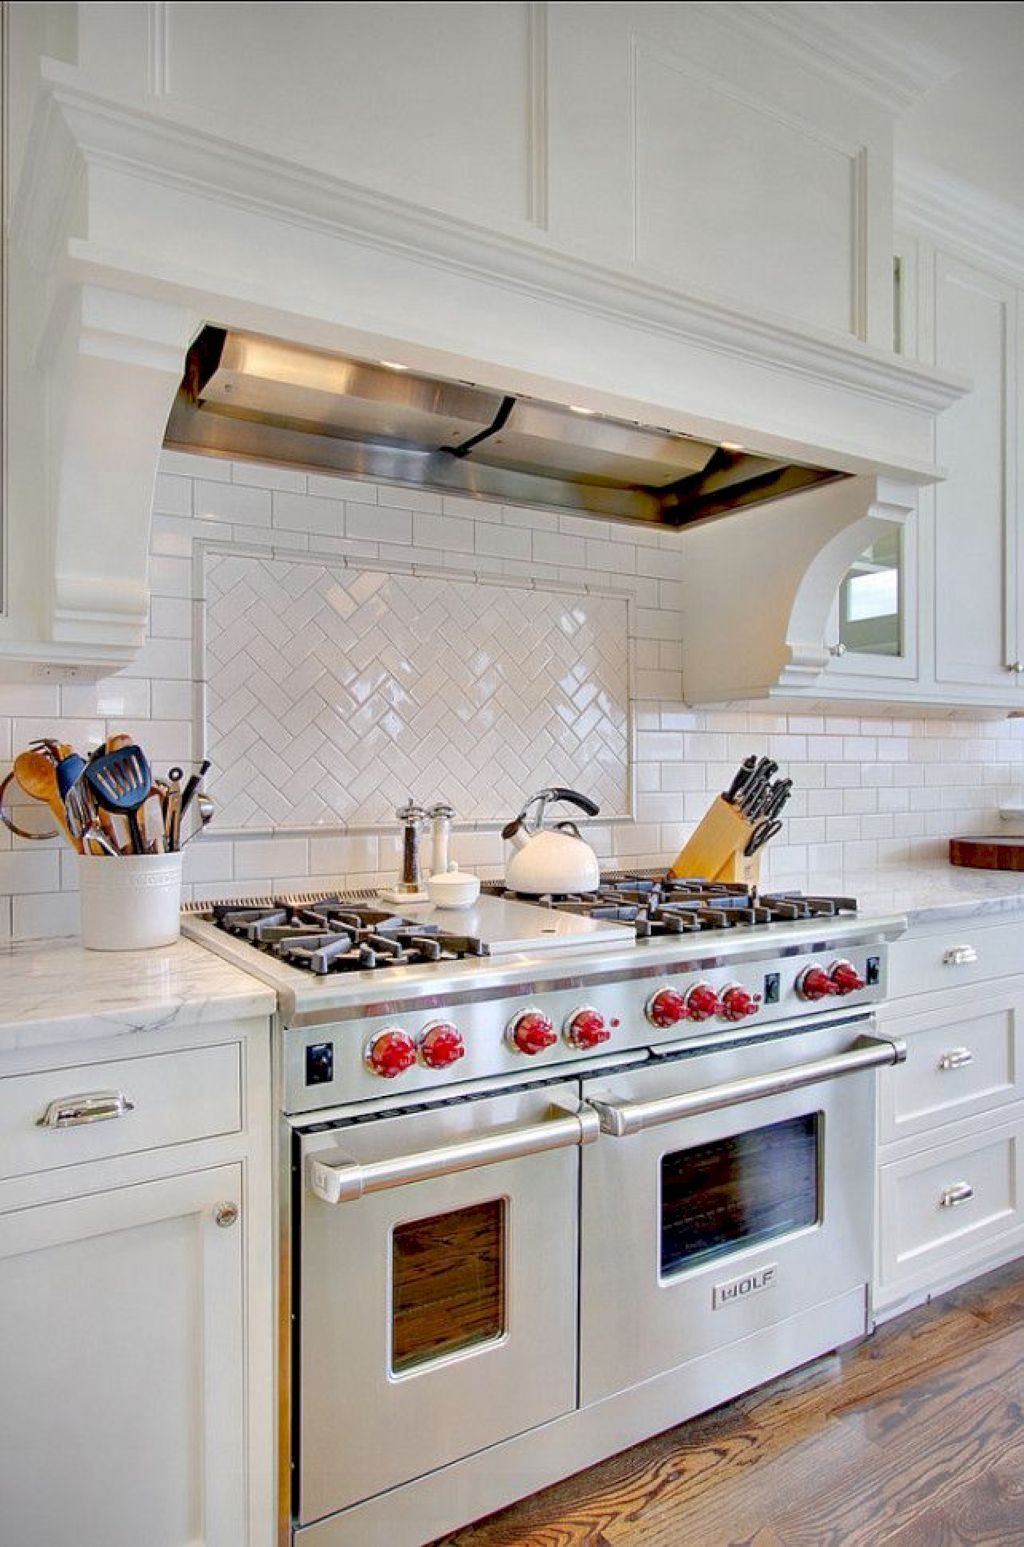 Gorgeous 50 White Kitchen Backsplash Design And Decor Ideas  Https://bellezaroom.com